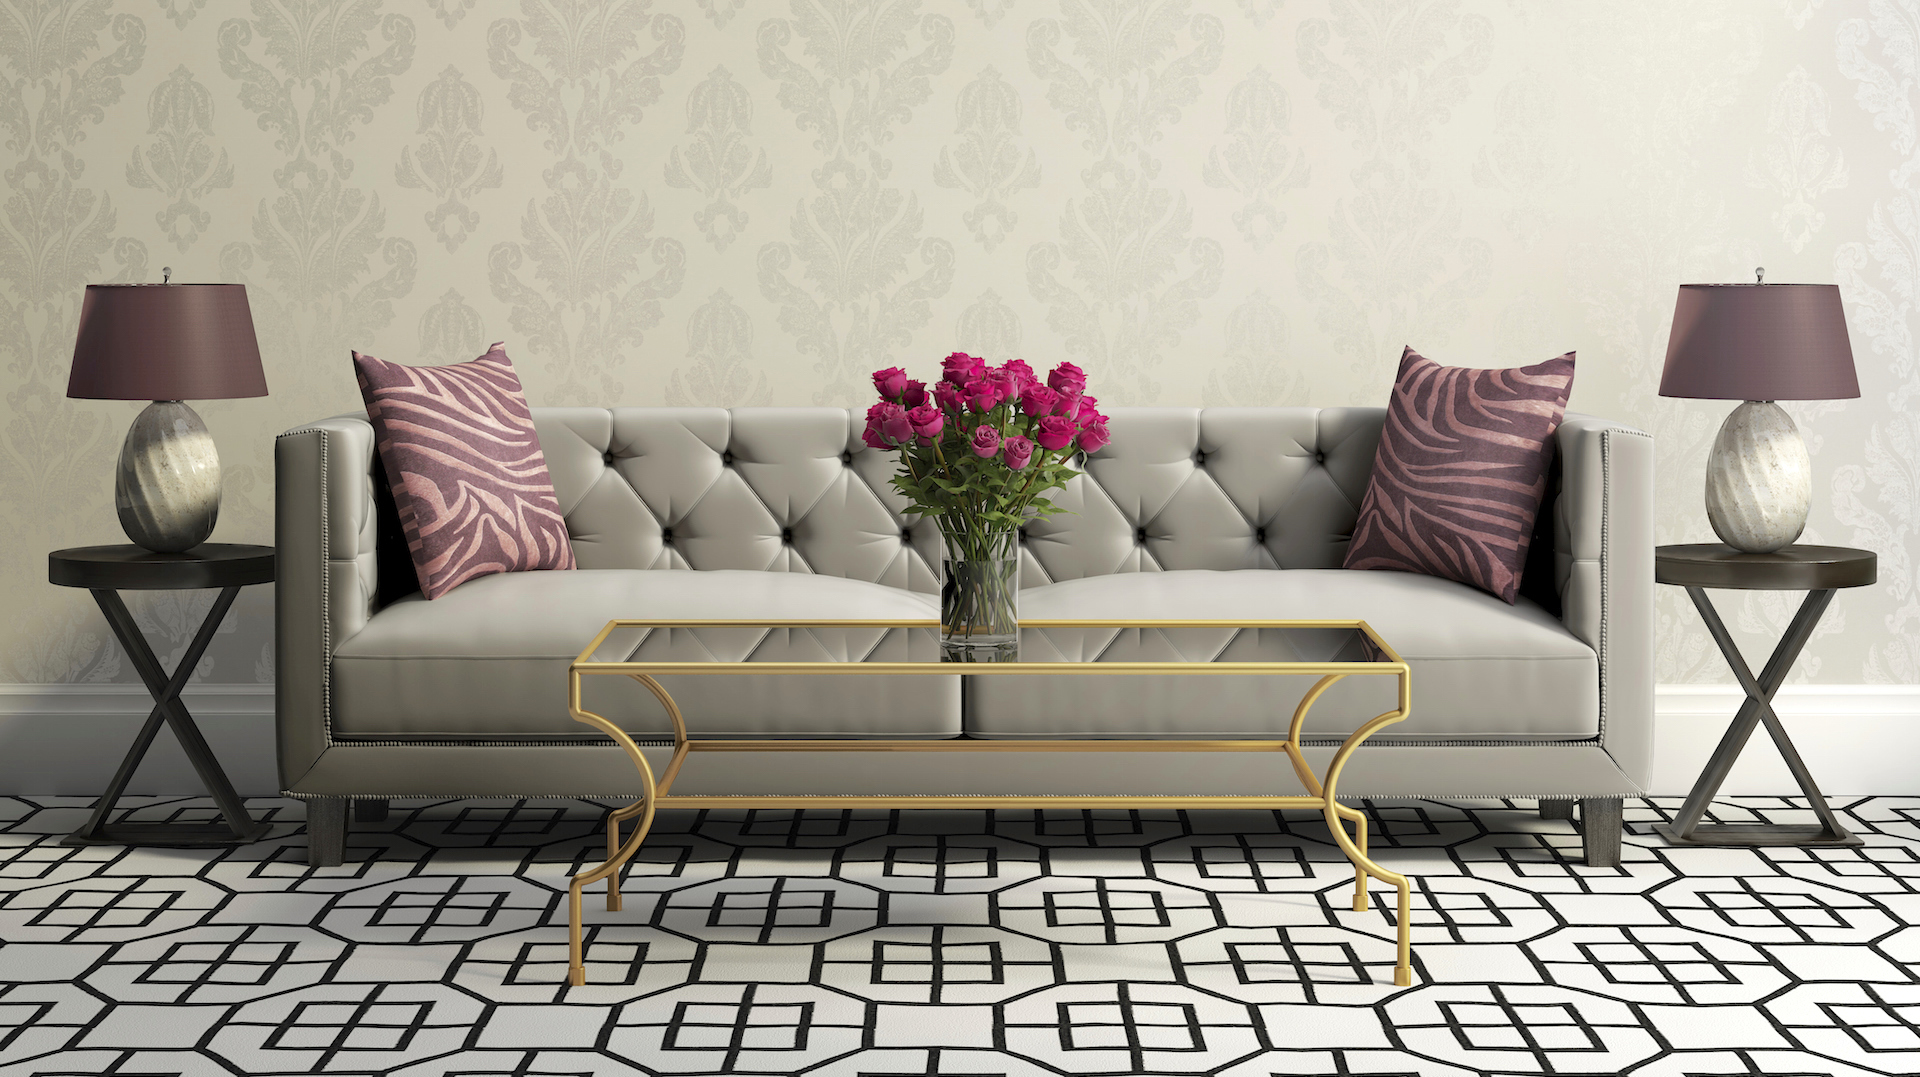 7 Home Decorating Rules To Break For Stunning Design Sheknows